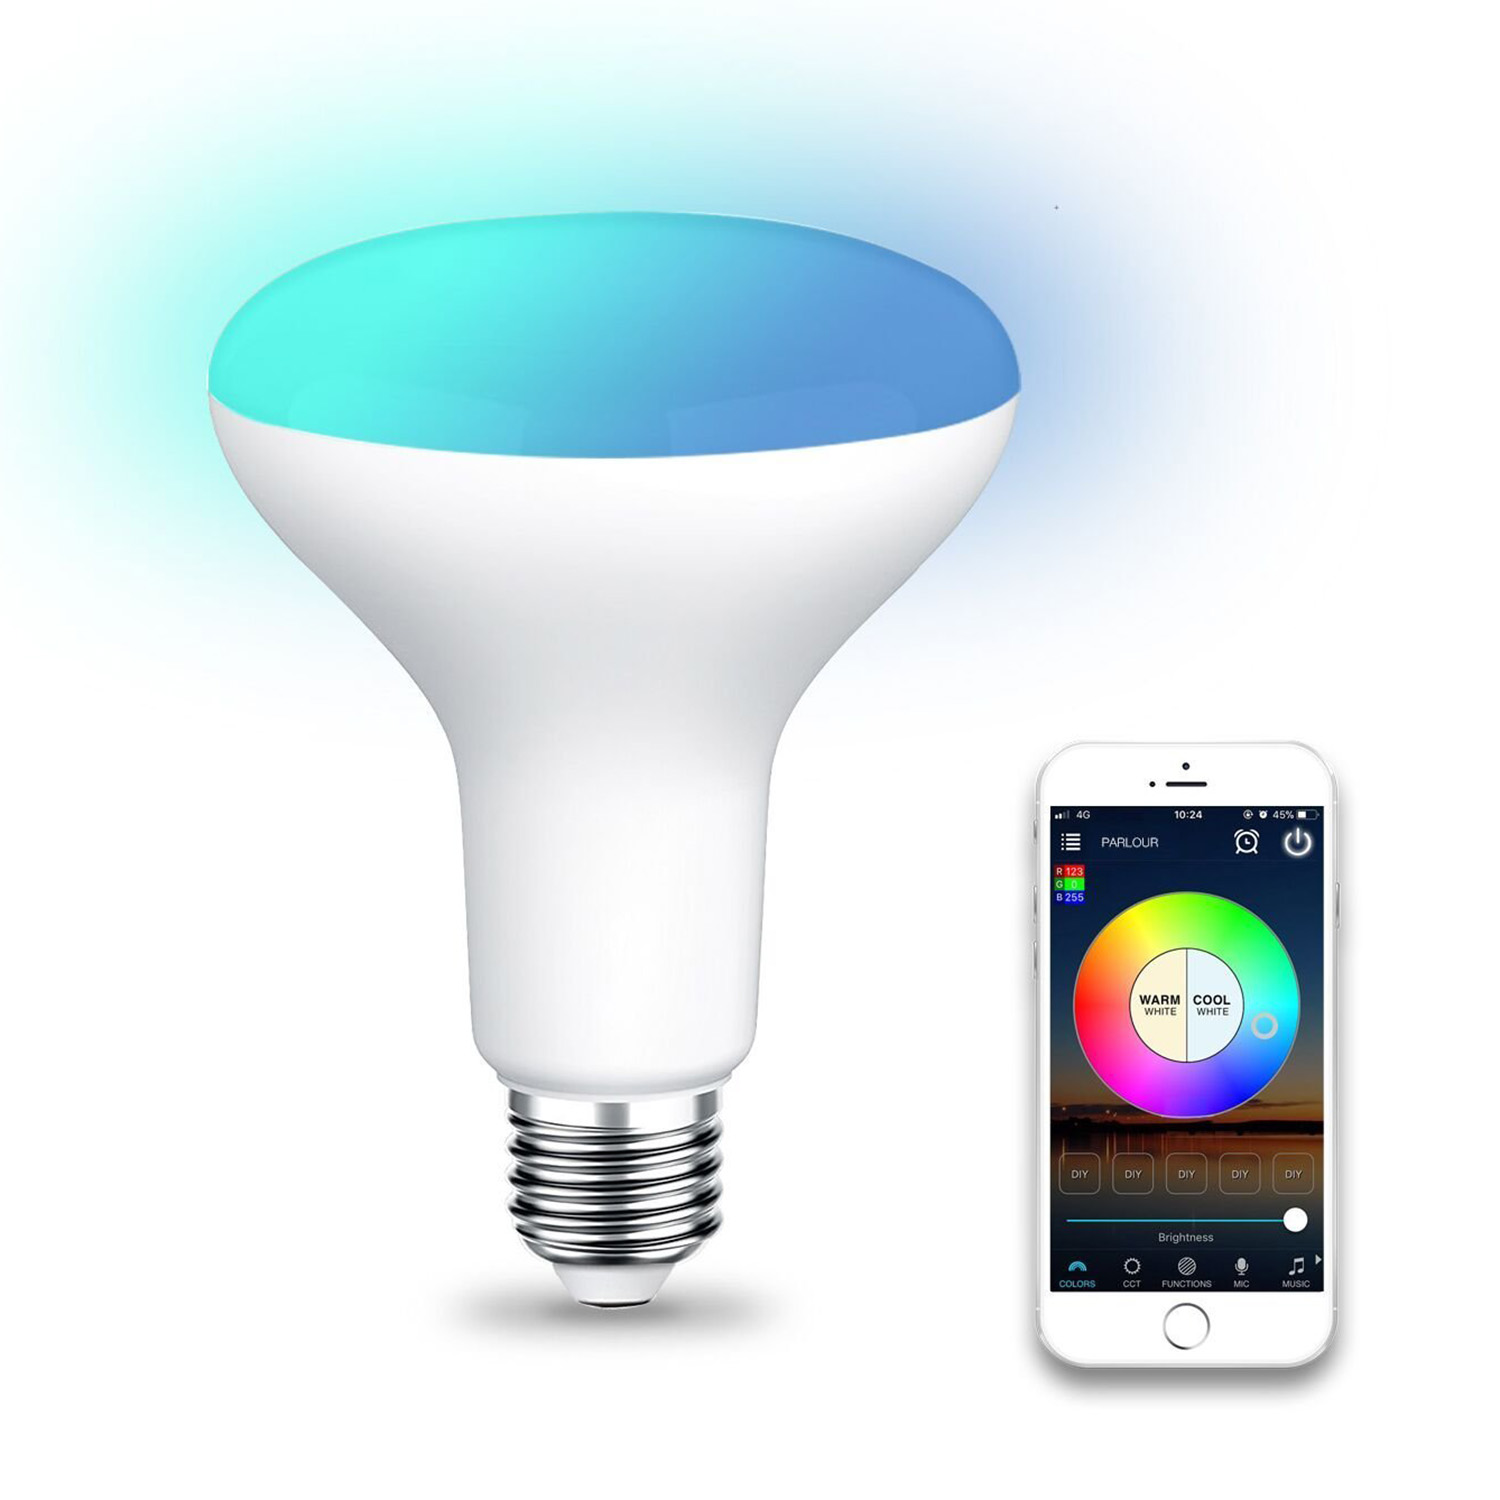 Hot sale WiFi BR30 LED Flood Light Bulb, Tunable White & Color Changing Smart Flood Light Bulb, Compatible with Alexa & Google